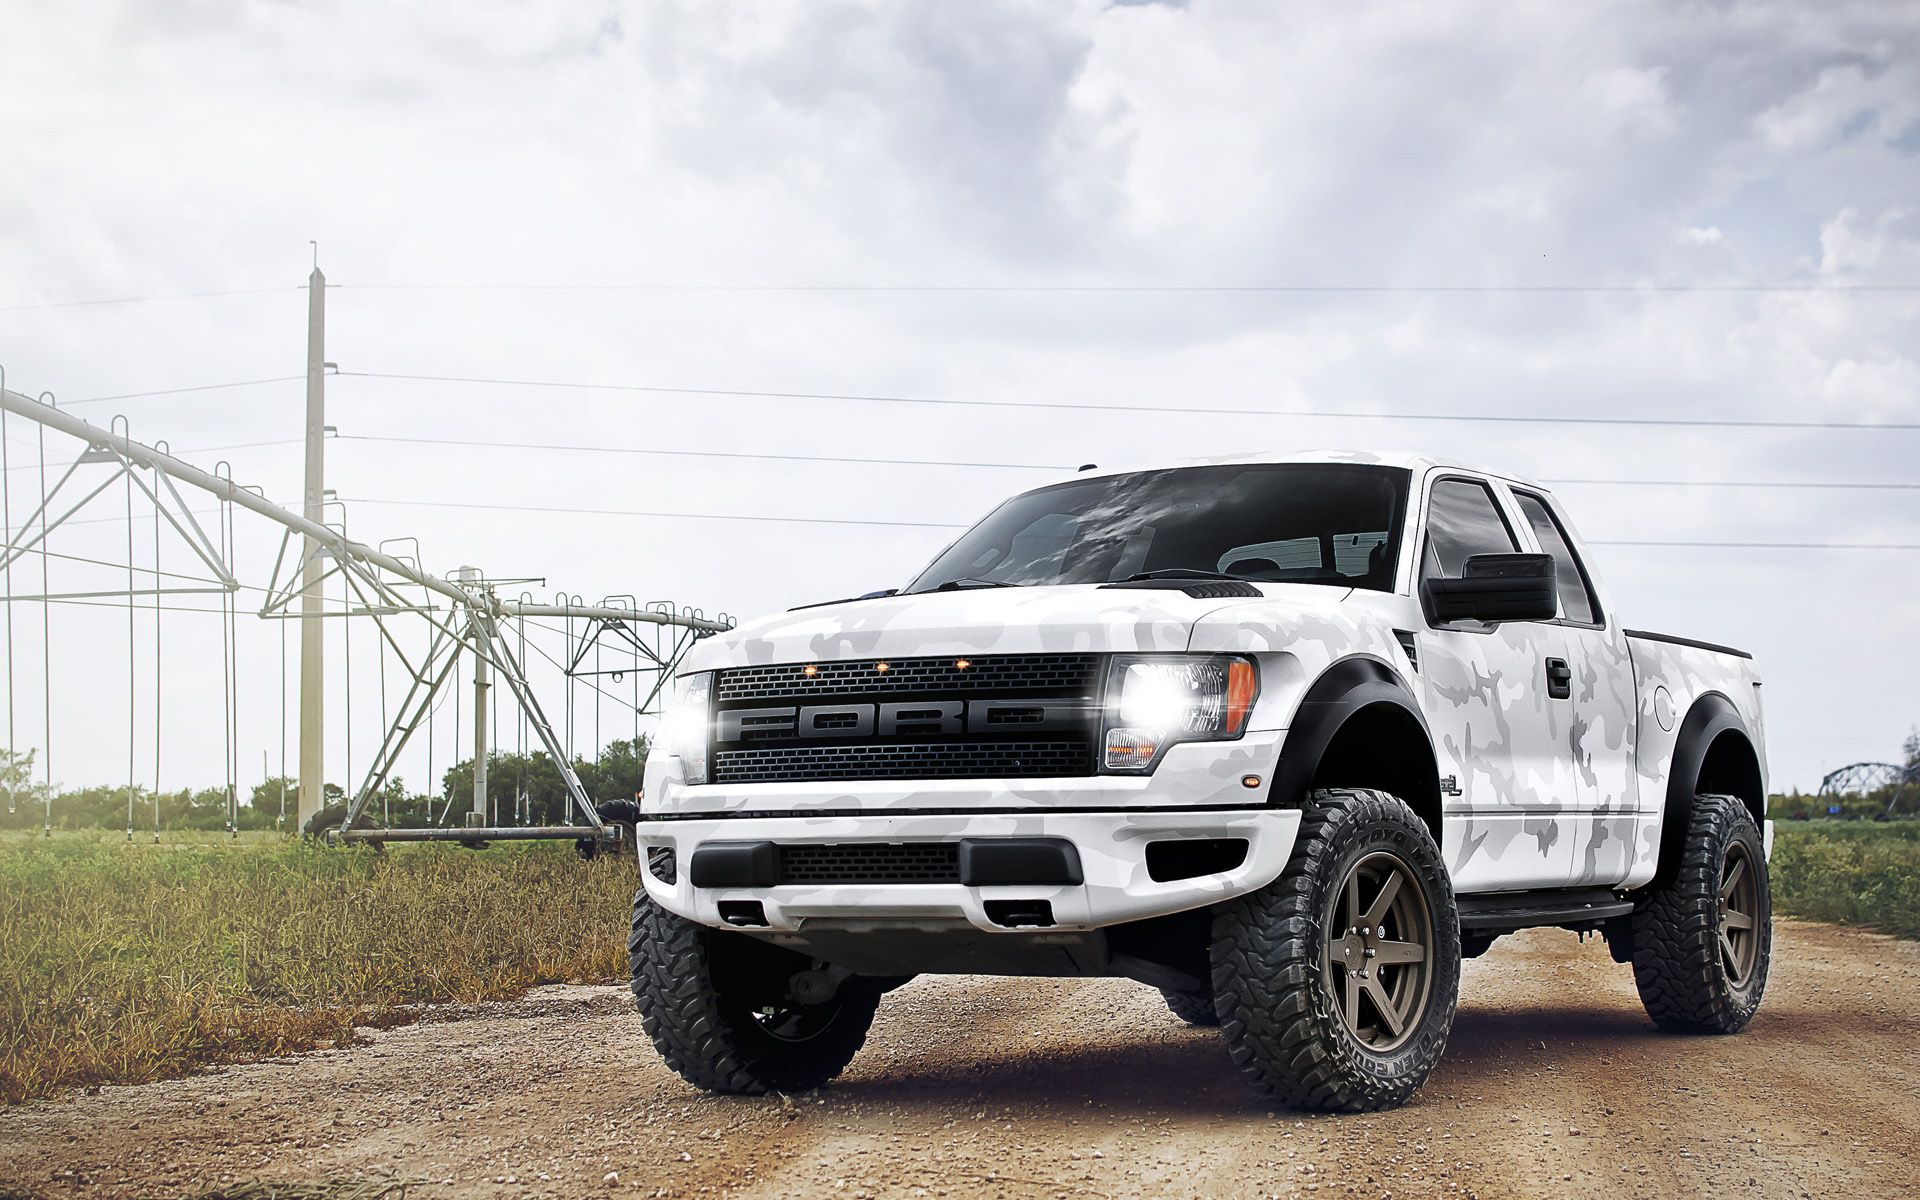 Ford Raptor Lifted Pink Camo Ford Raptor Subaru Cars Ford